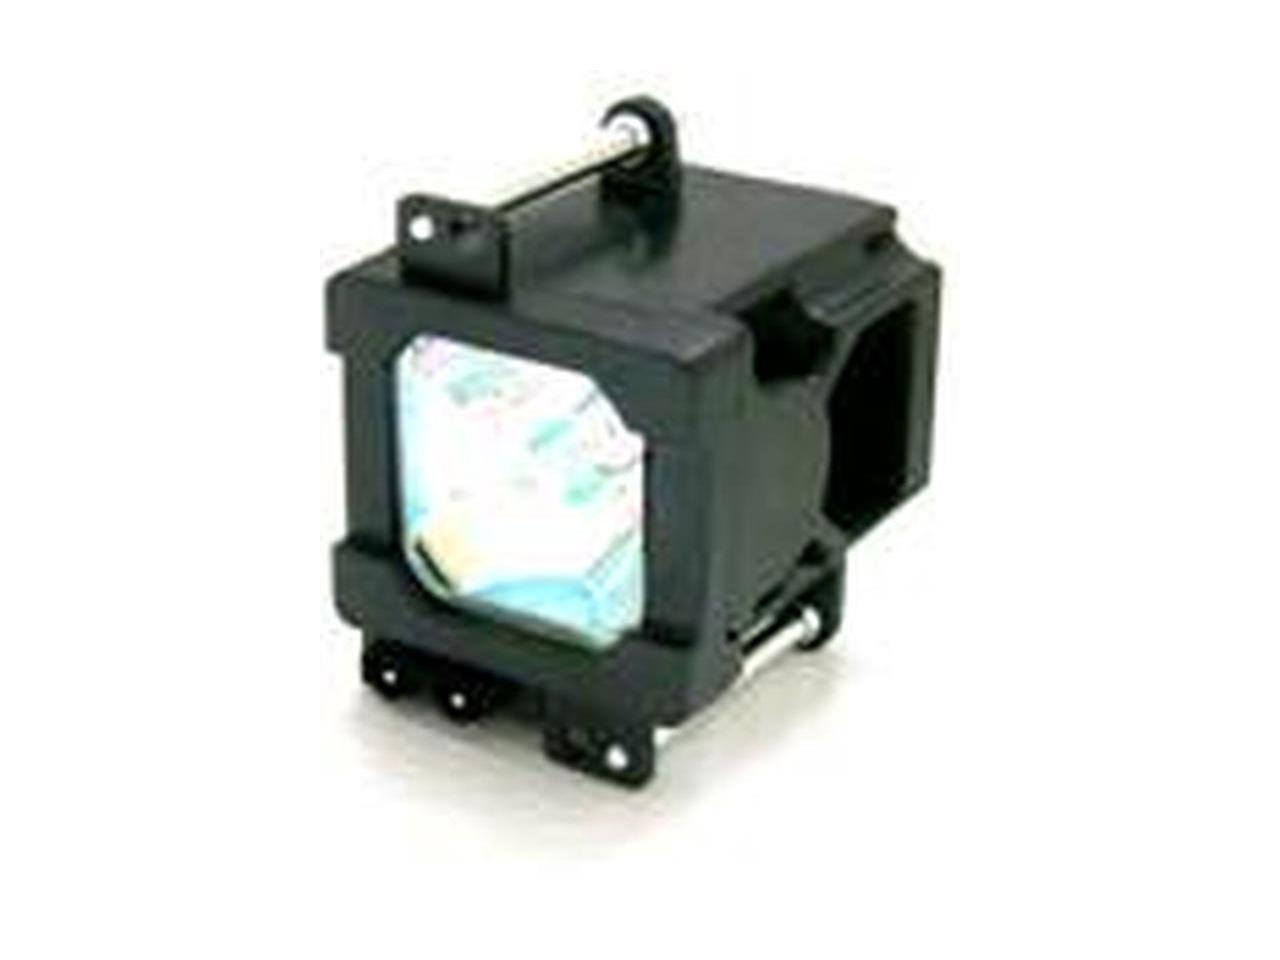 JVC HD-61Z456 Projection TV Lamp Assembly with High Quality Original Bulb Inside